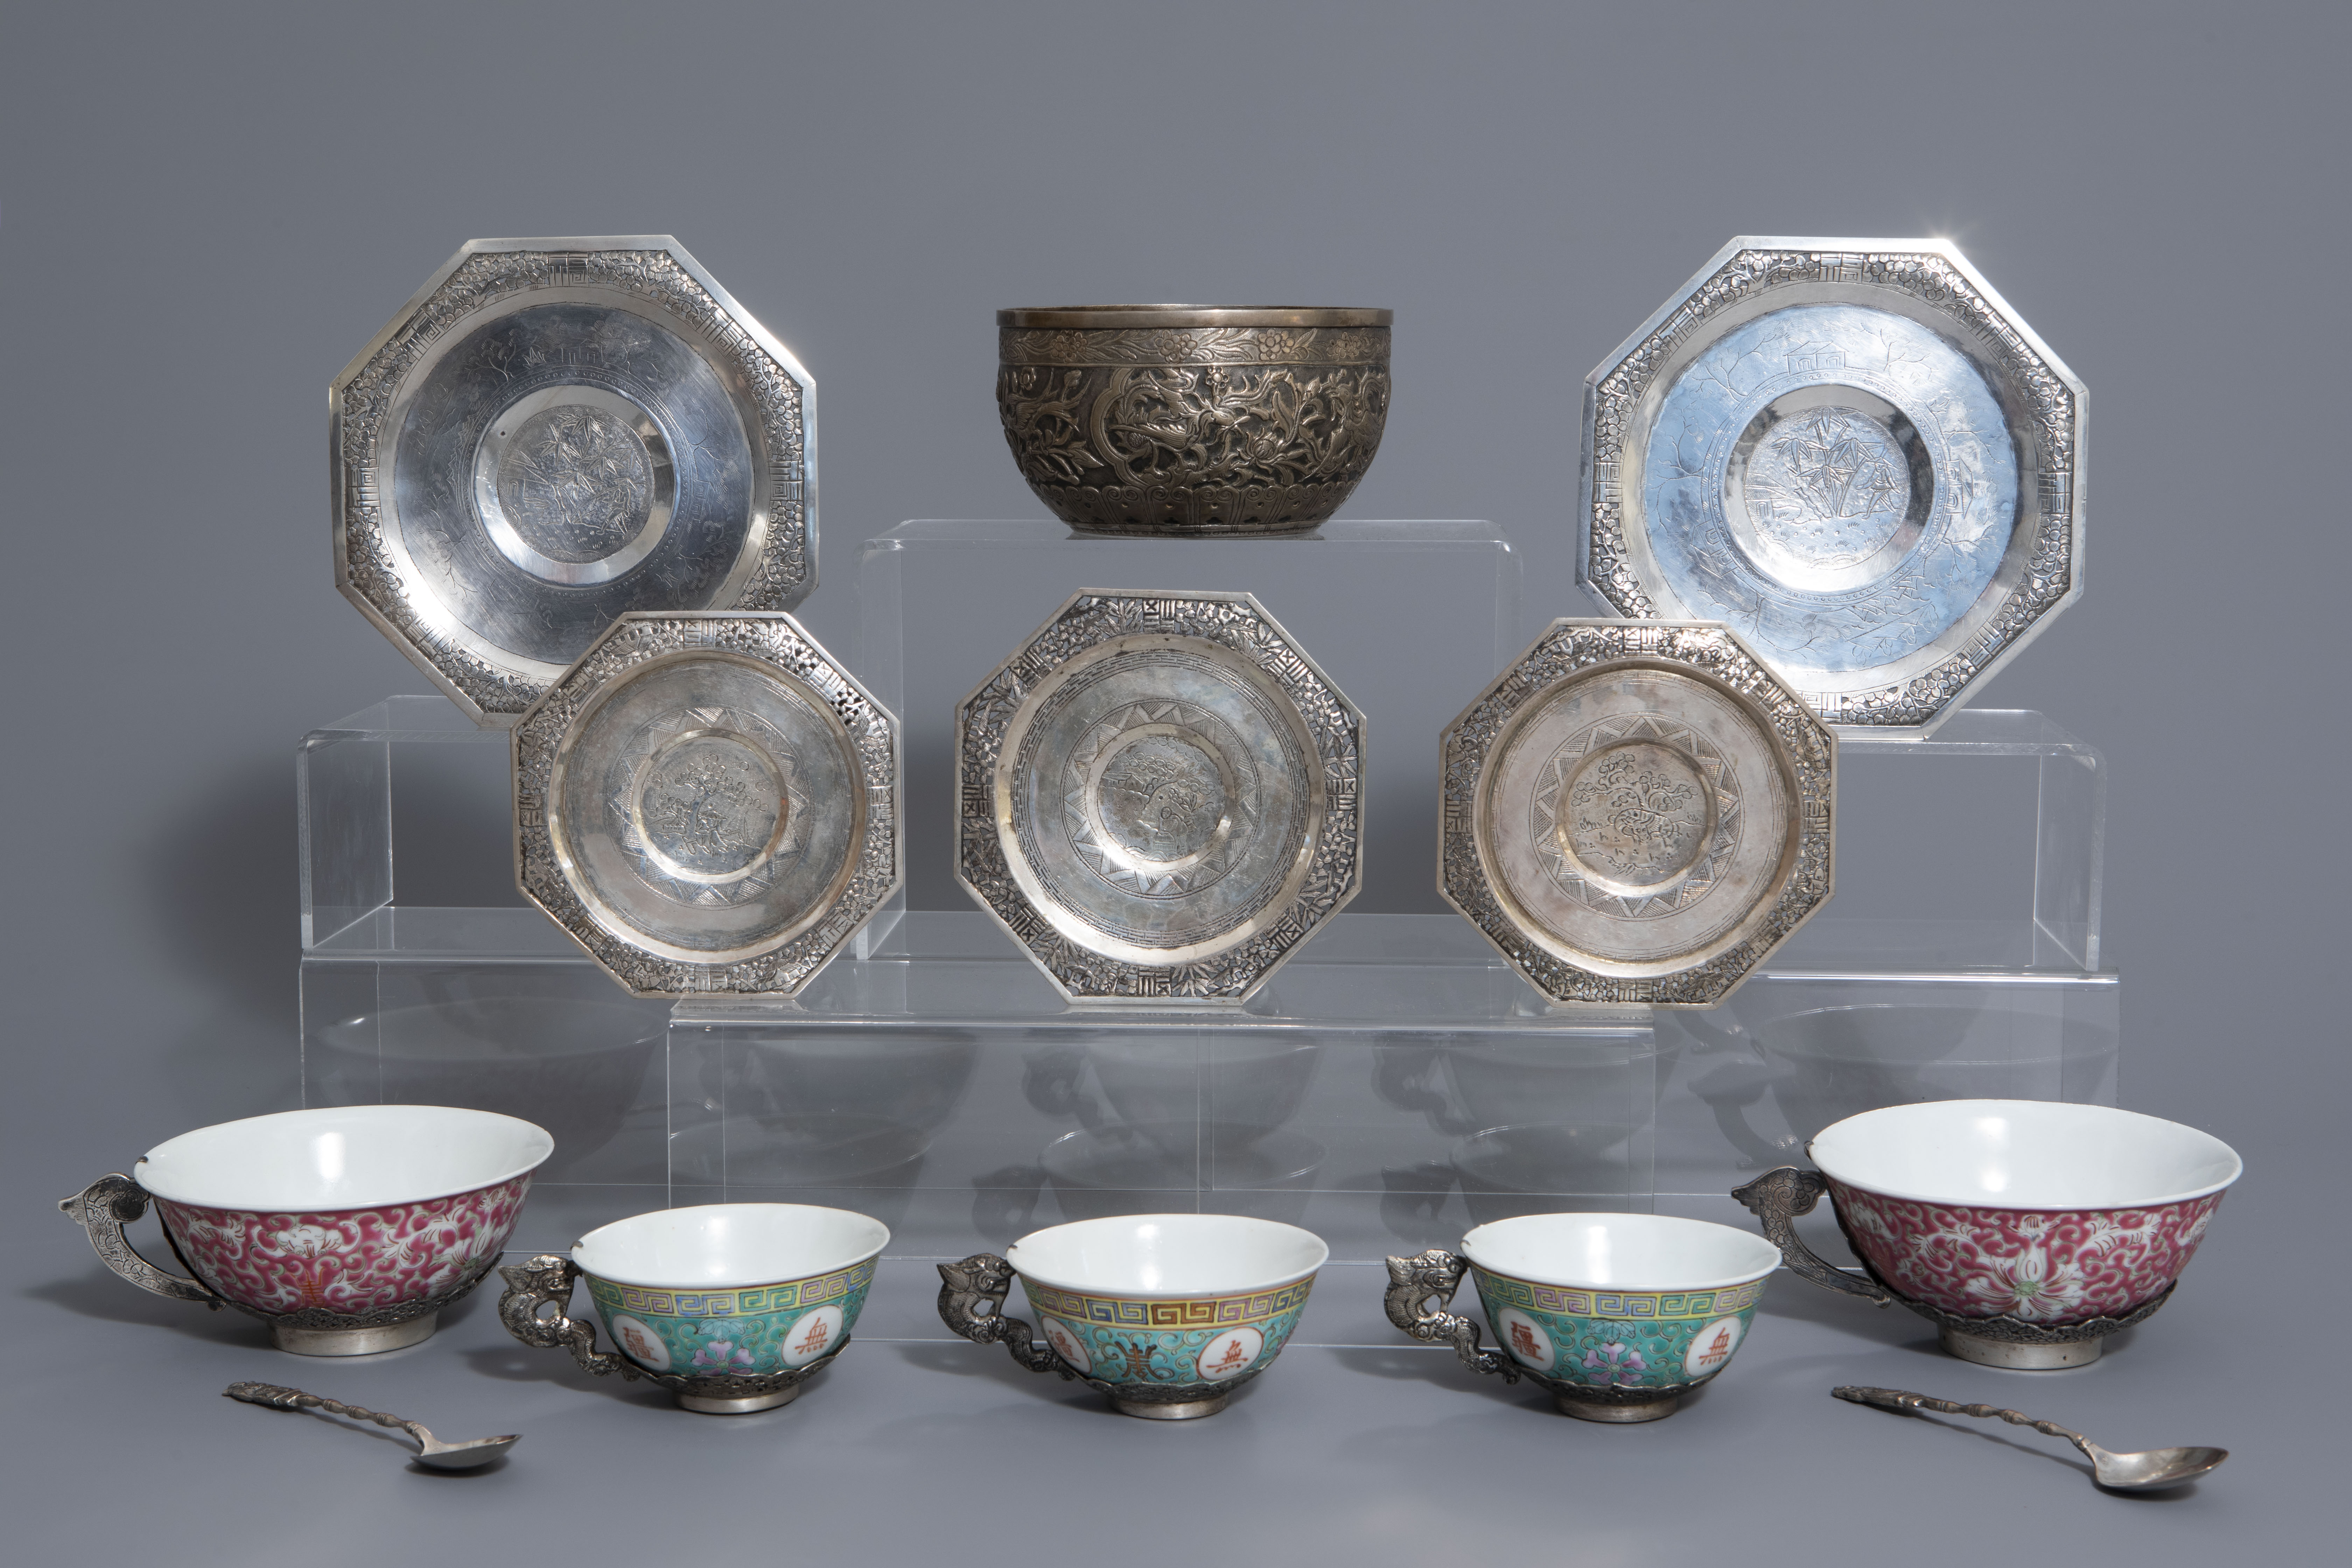 Five Chinese famille rose and silver cups and saucers and a bowl, 19th/20th C.